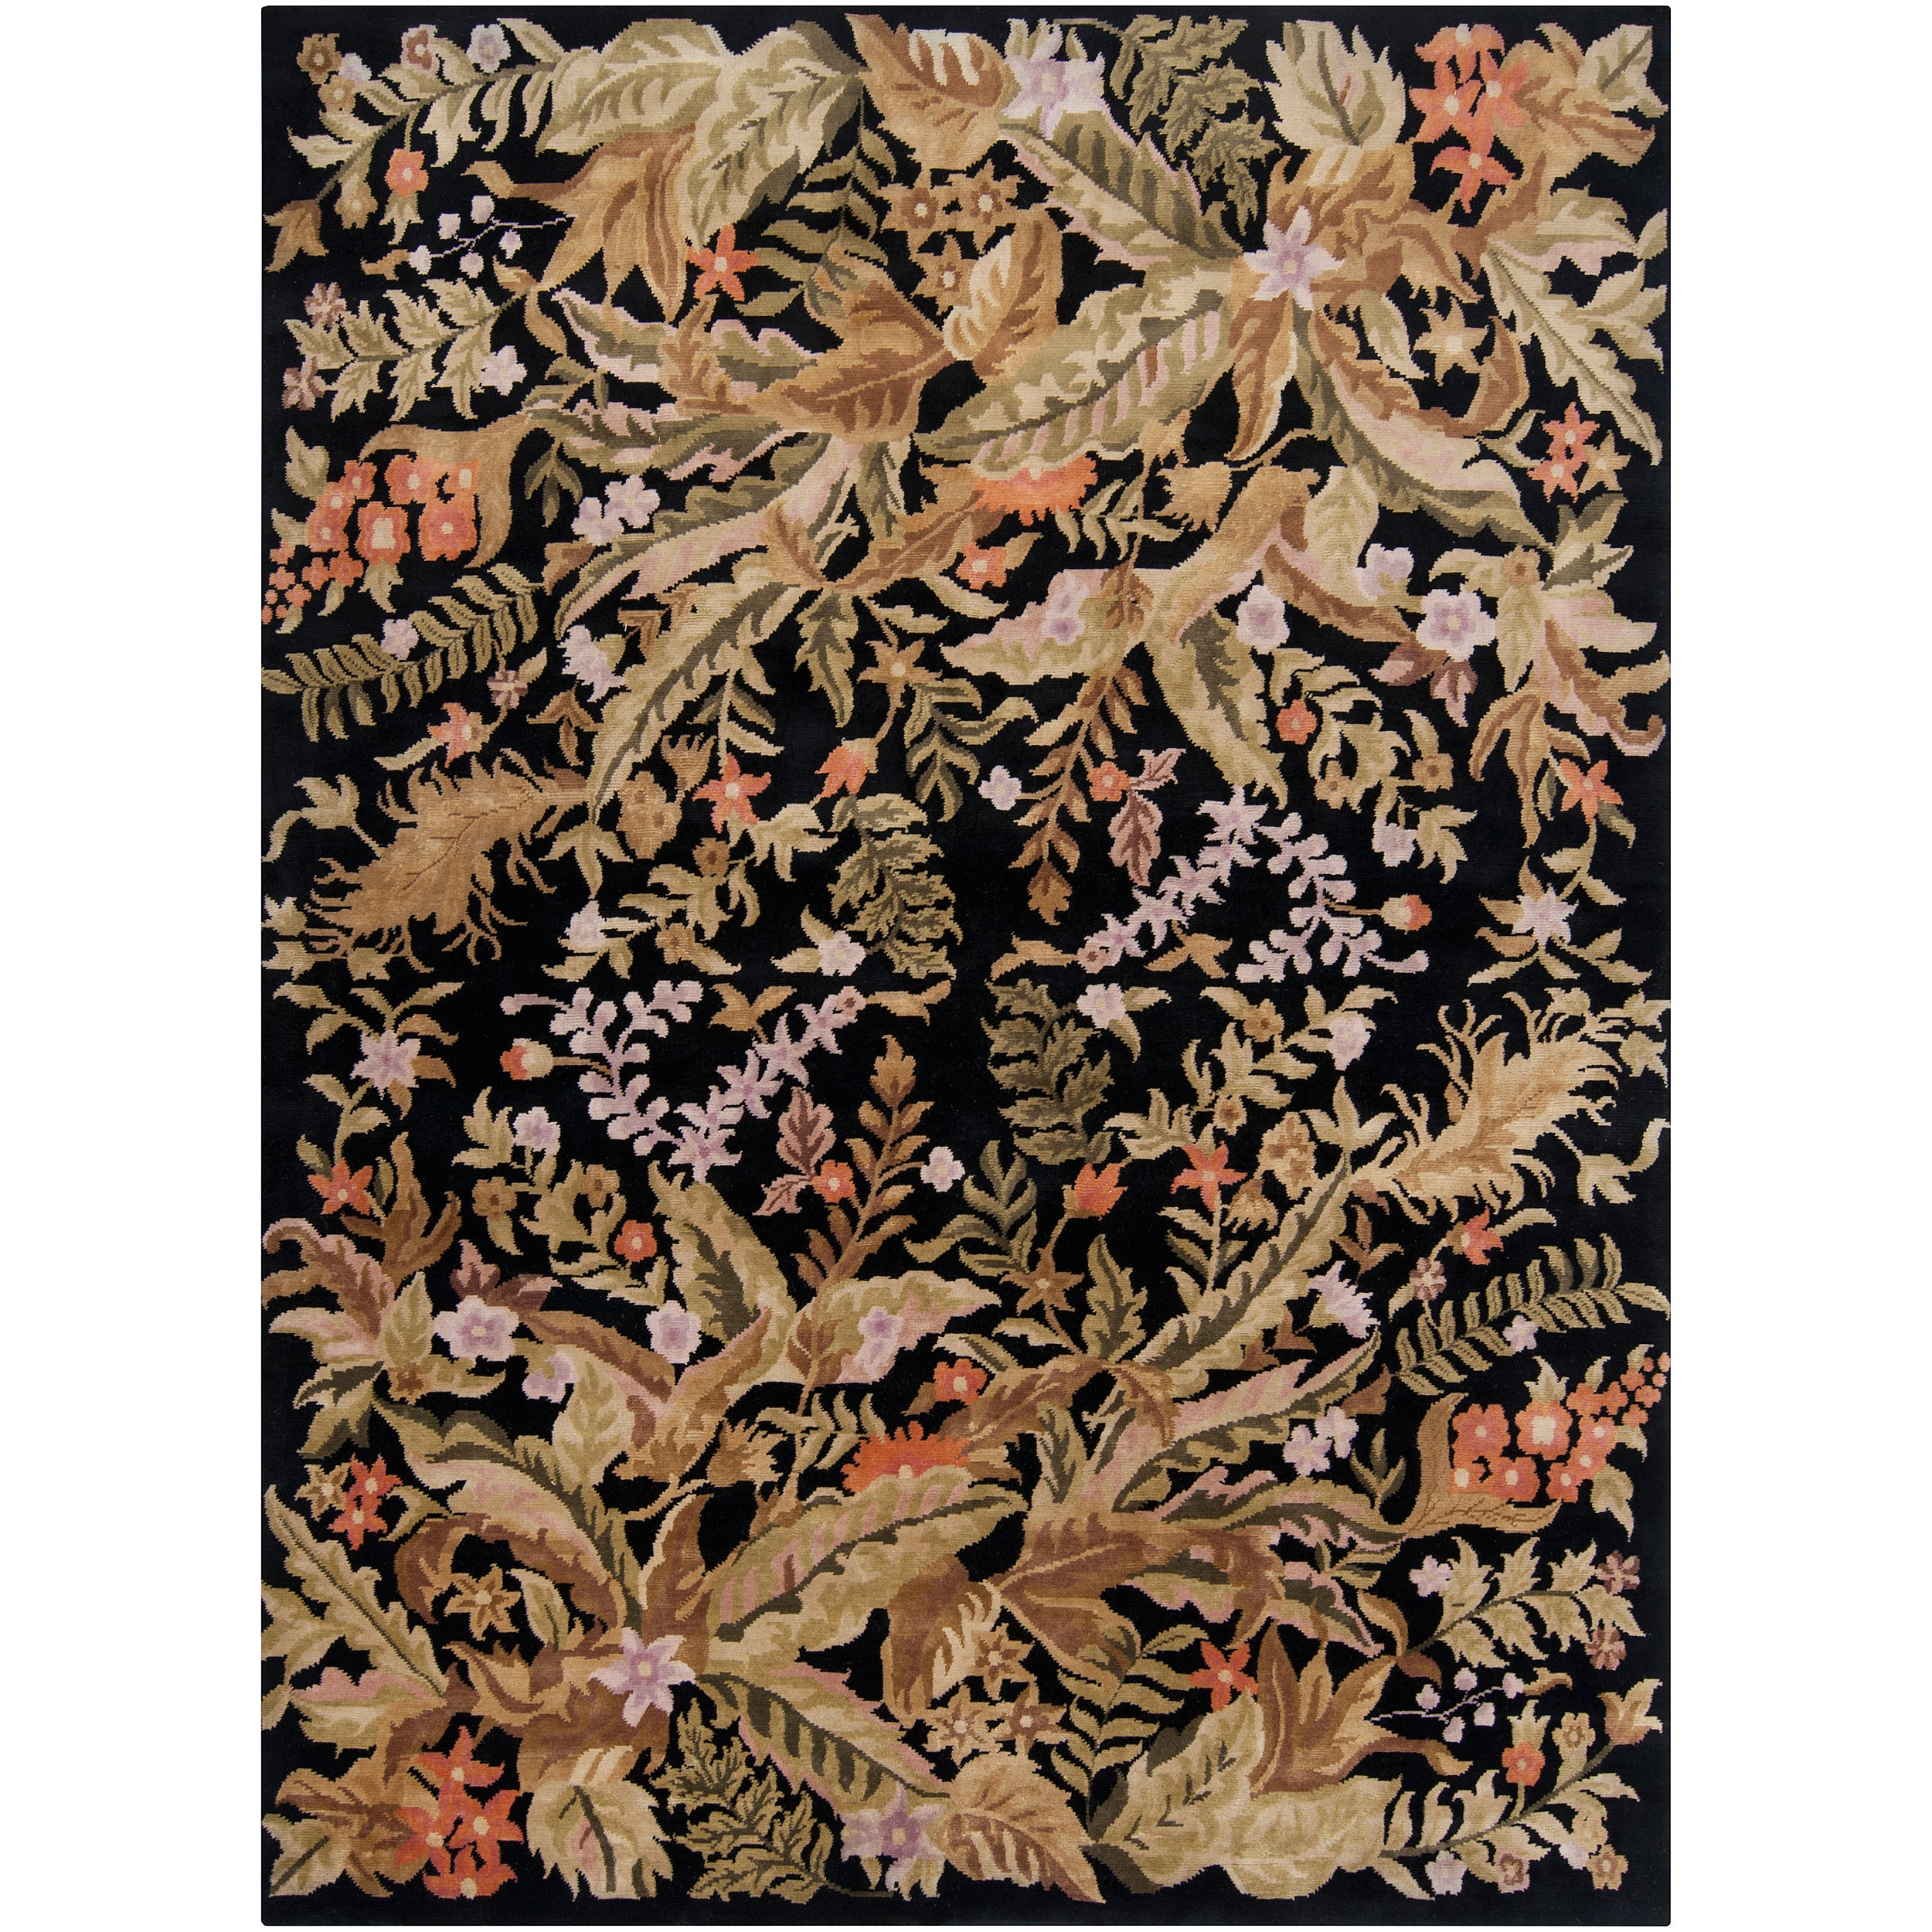 Hand-knotted Multicolored La Crosse Geometric Semi-Worsted Wool Floral Rug (8' x 11')